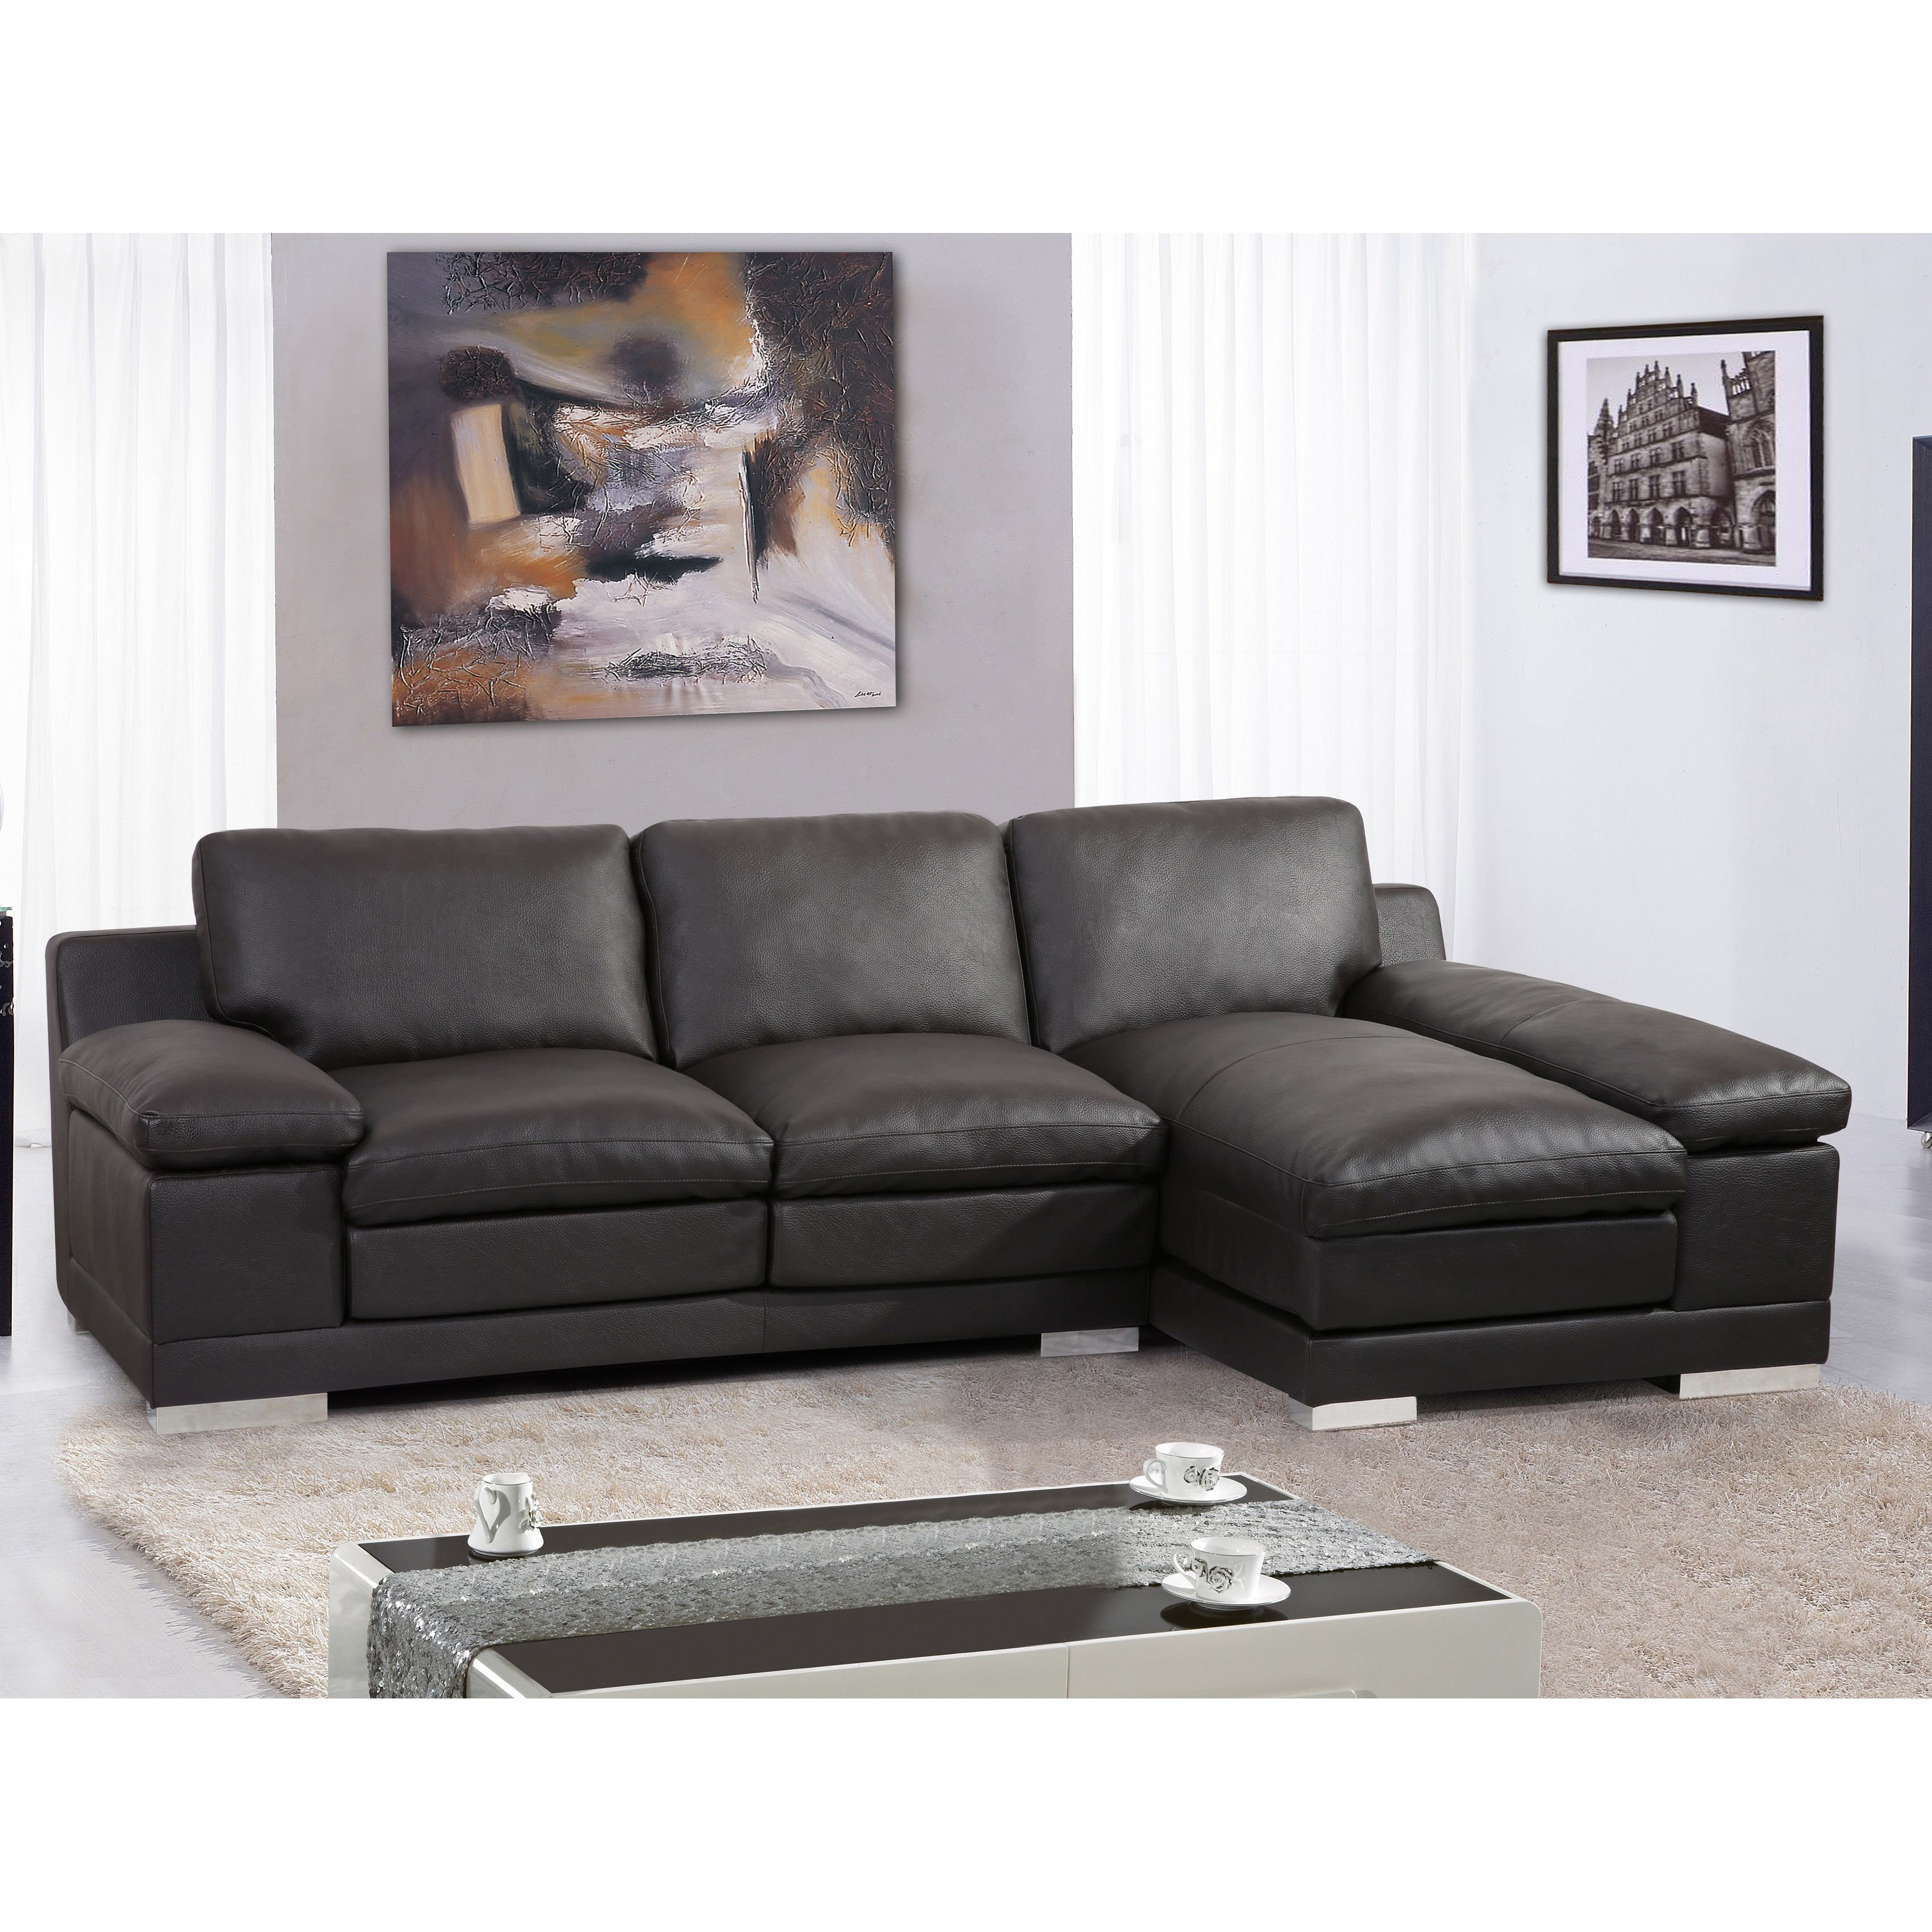 Overstock Com Online Shopping Bedding Furniture Electronics Jewelry Clothing More 2 Piece Sectional Sofa Sectional Sofa With Chaise Modern Sofa Sectional